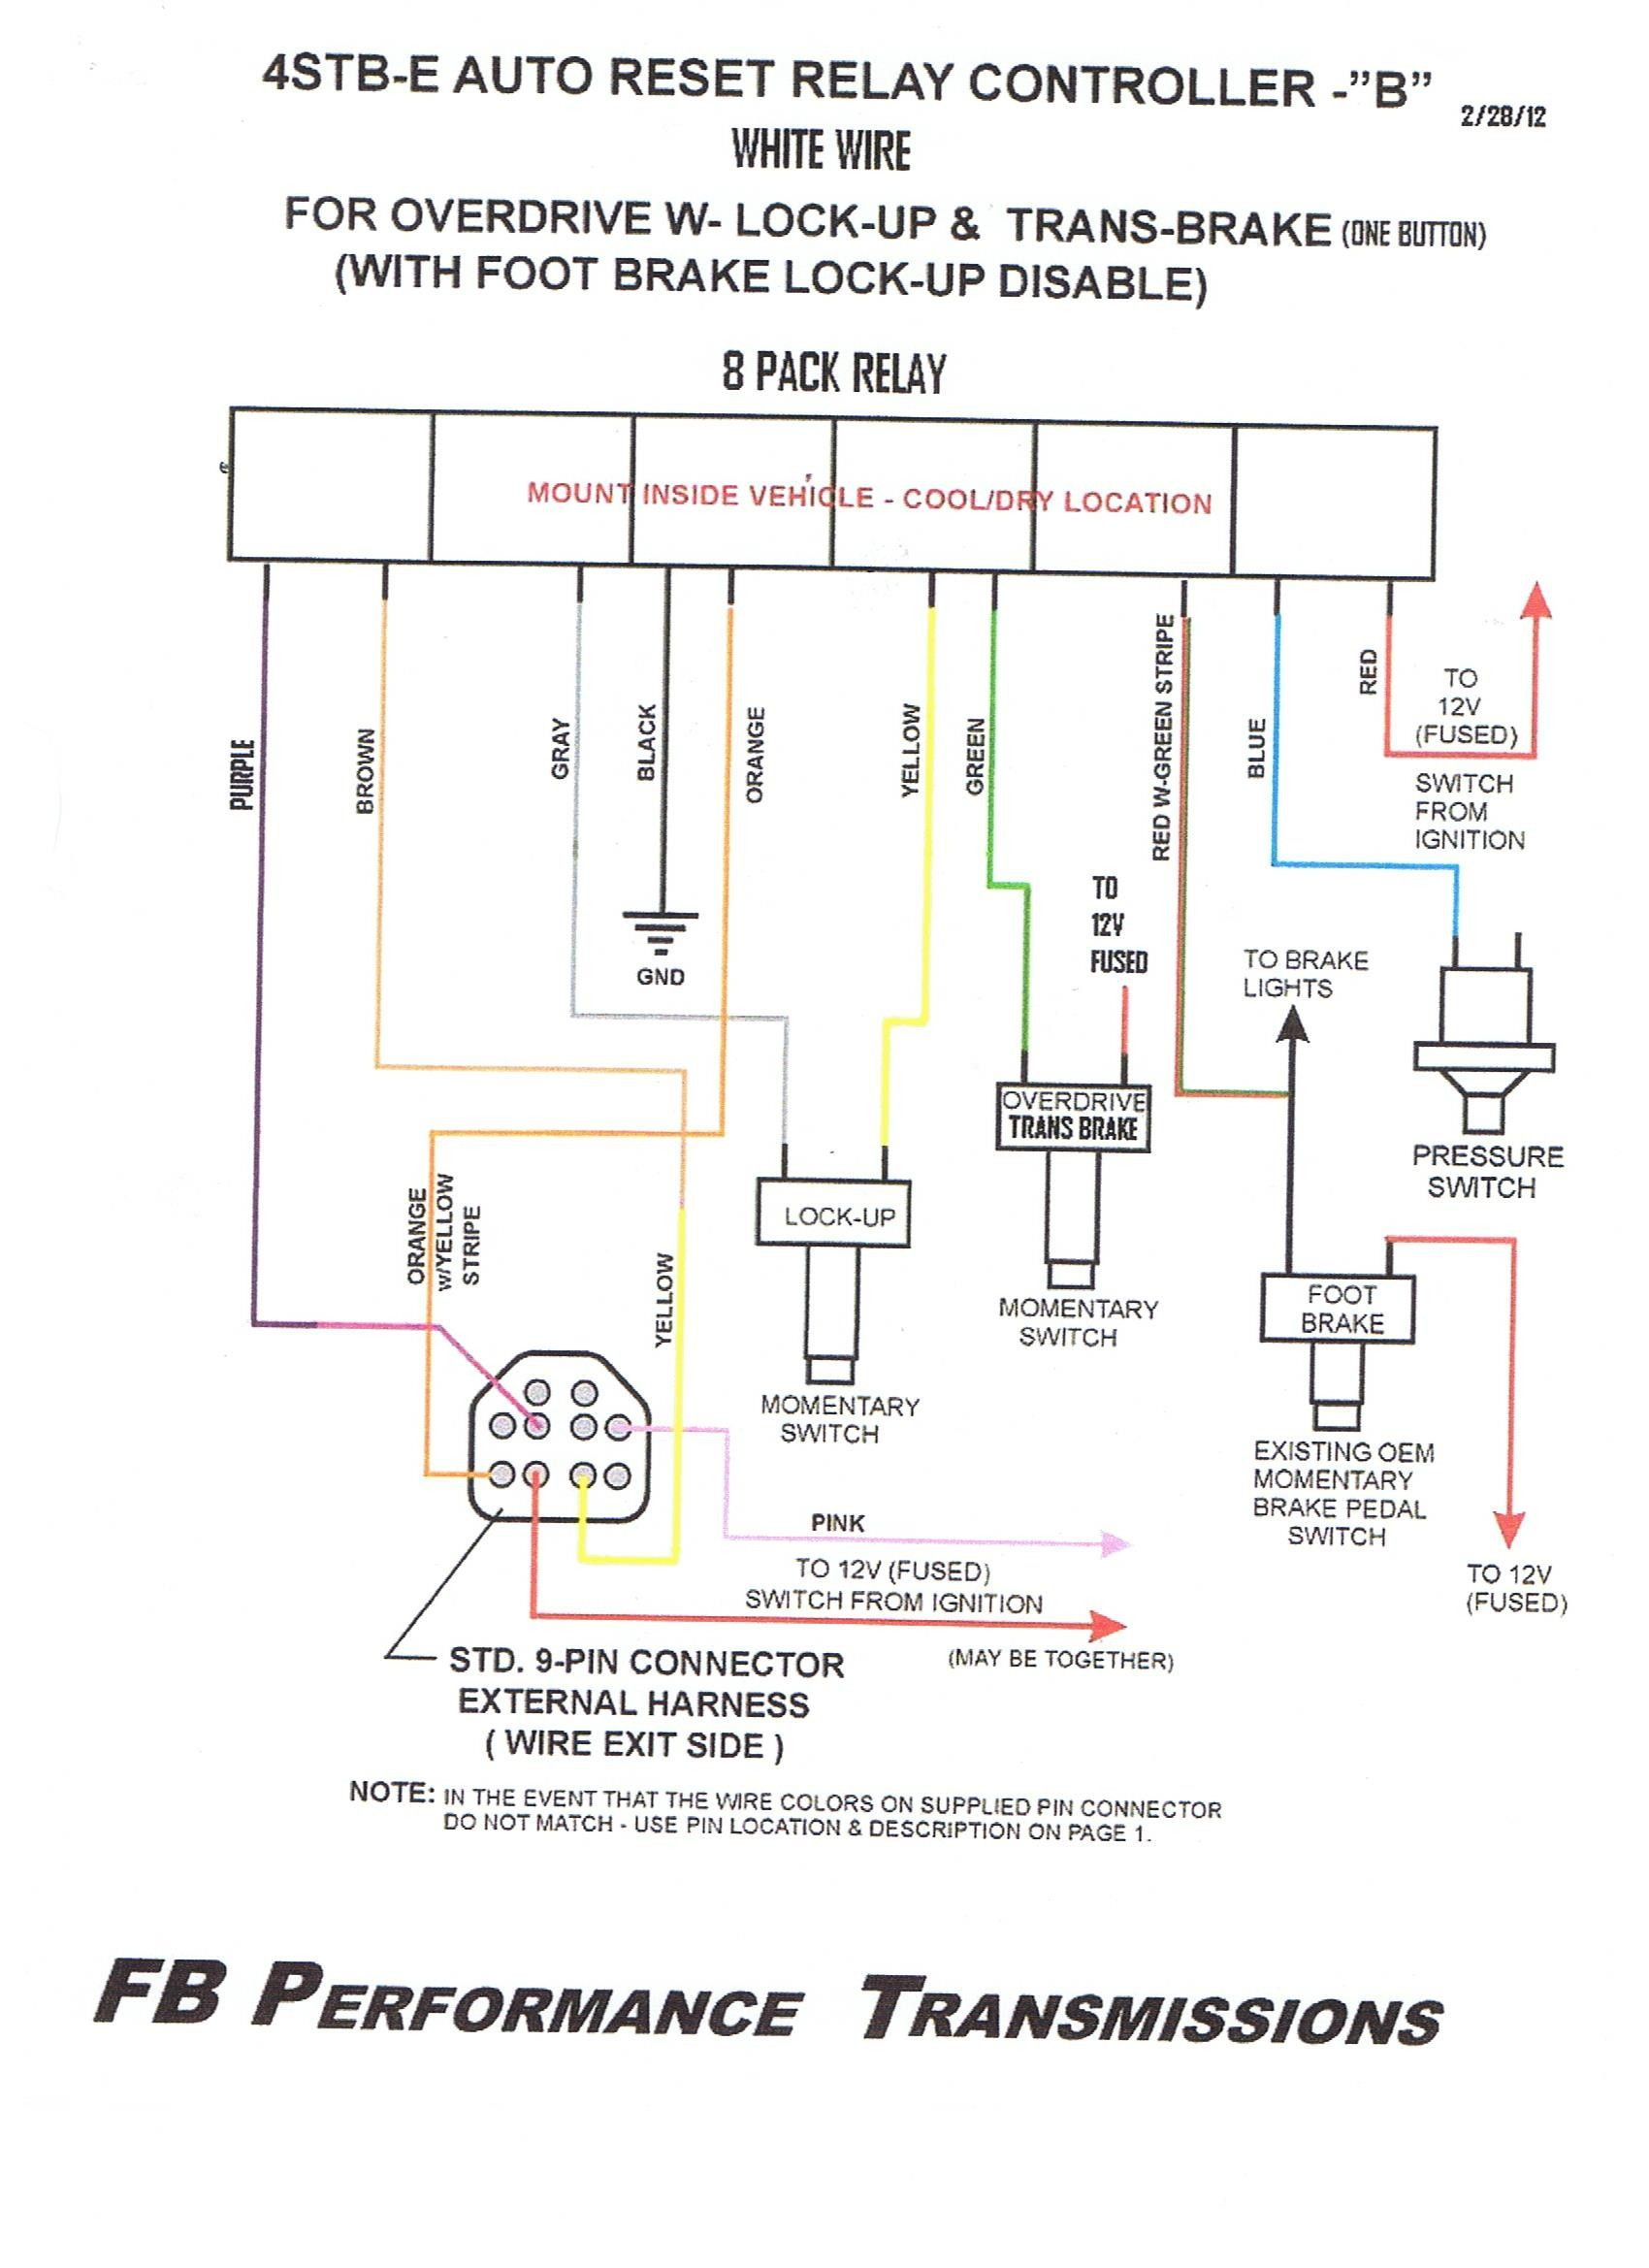 Awesome Wiring Diagram For Led Light Bar In 2020 Safety Switch Diagram Wire